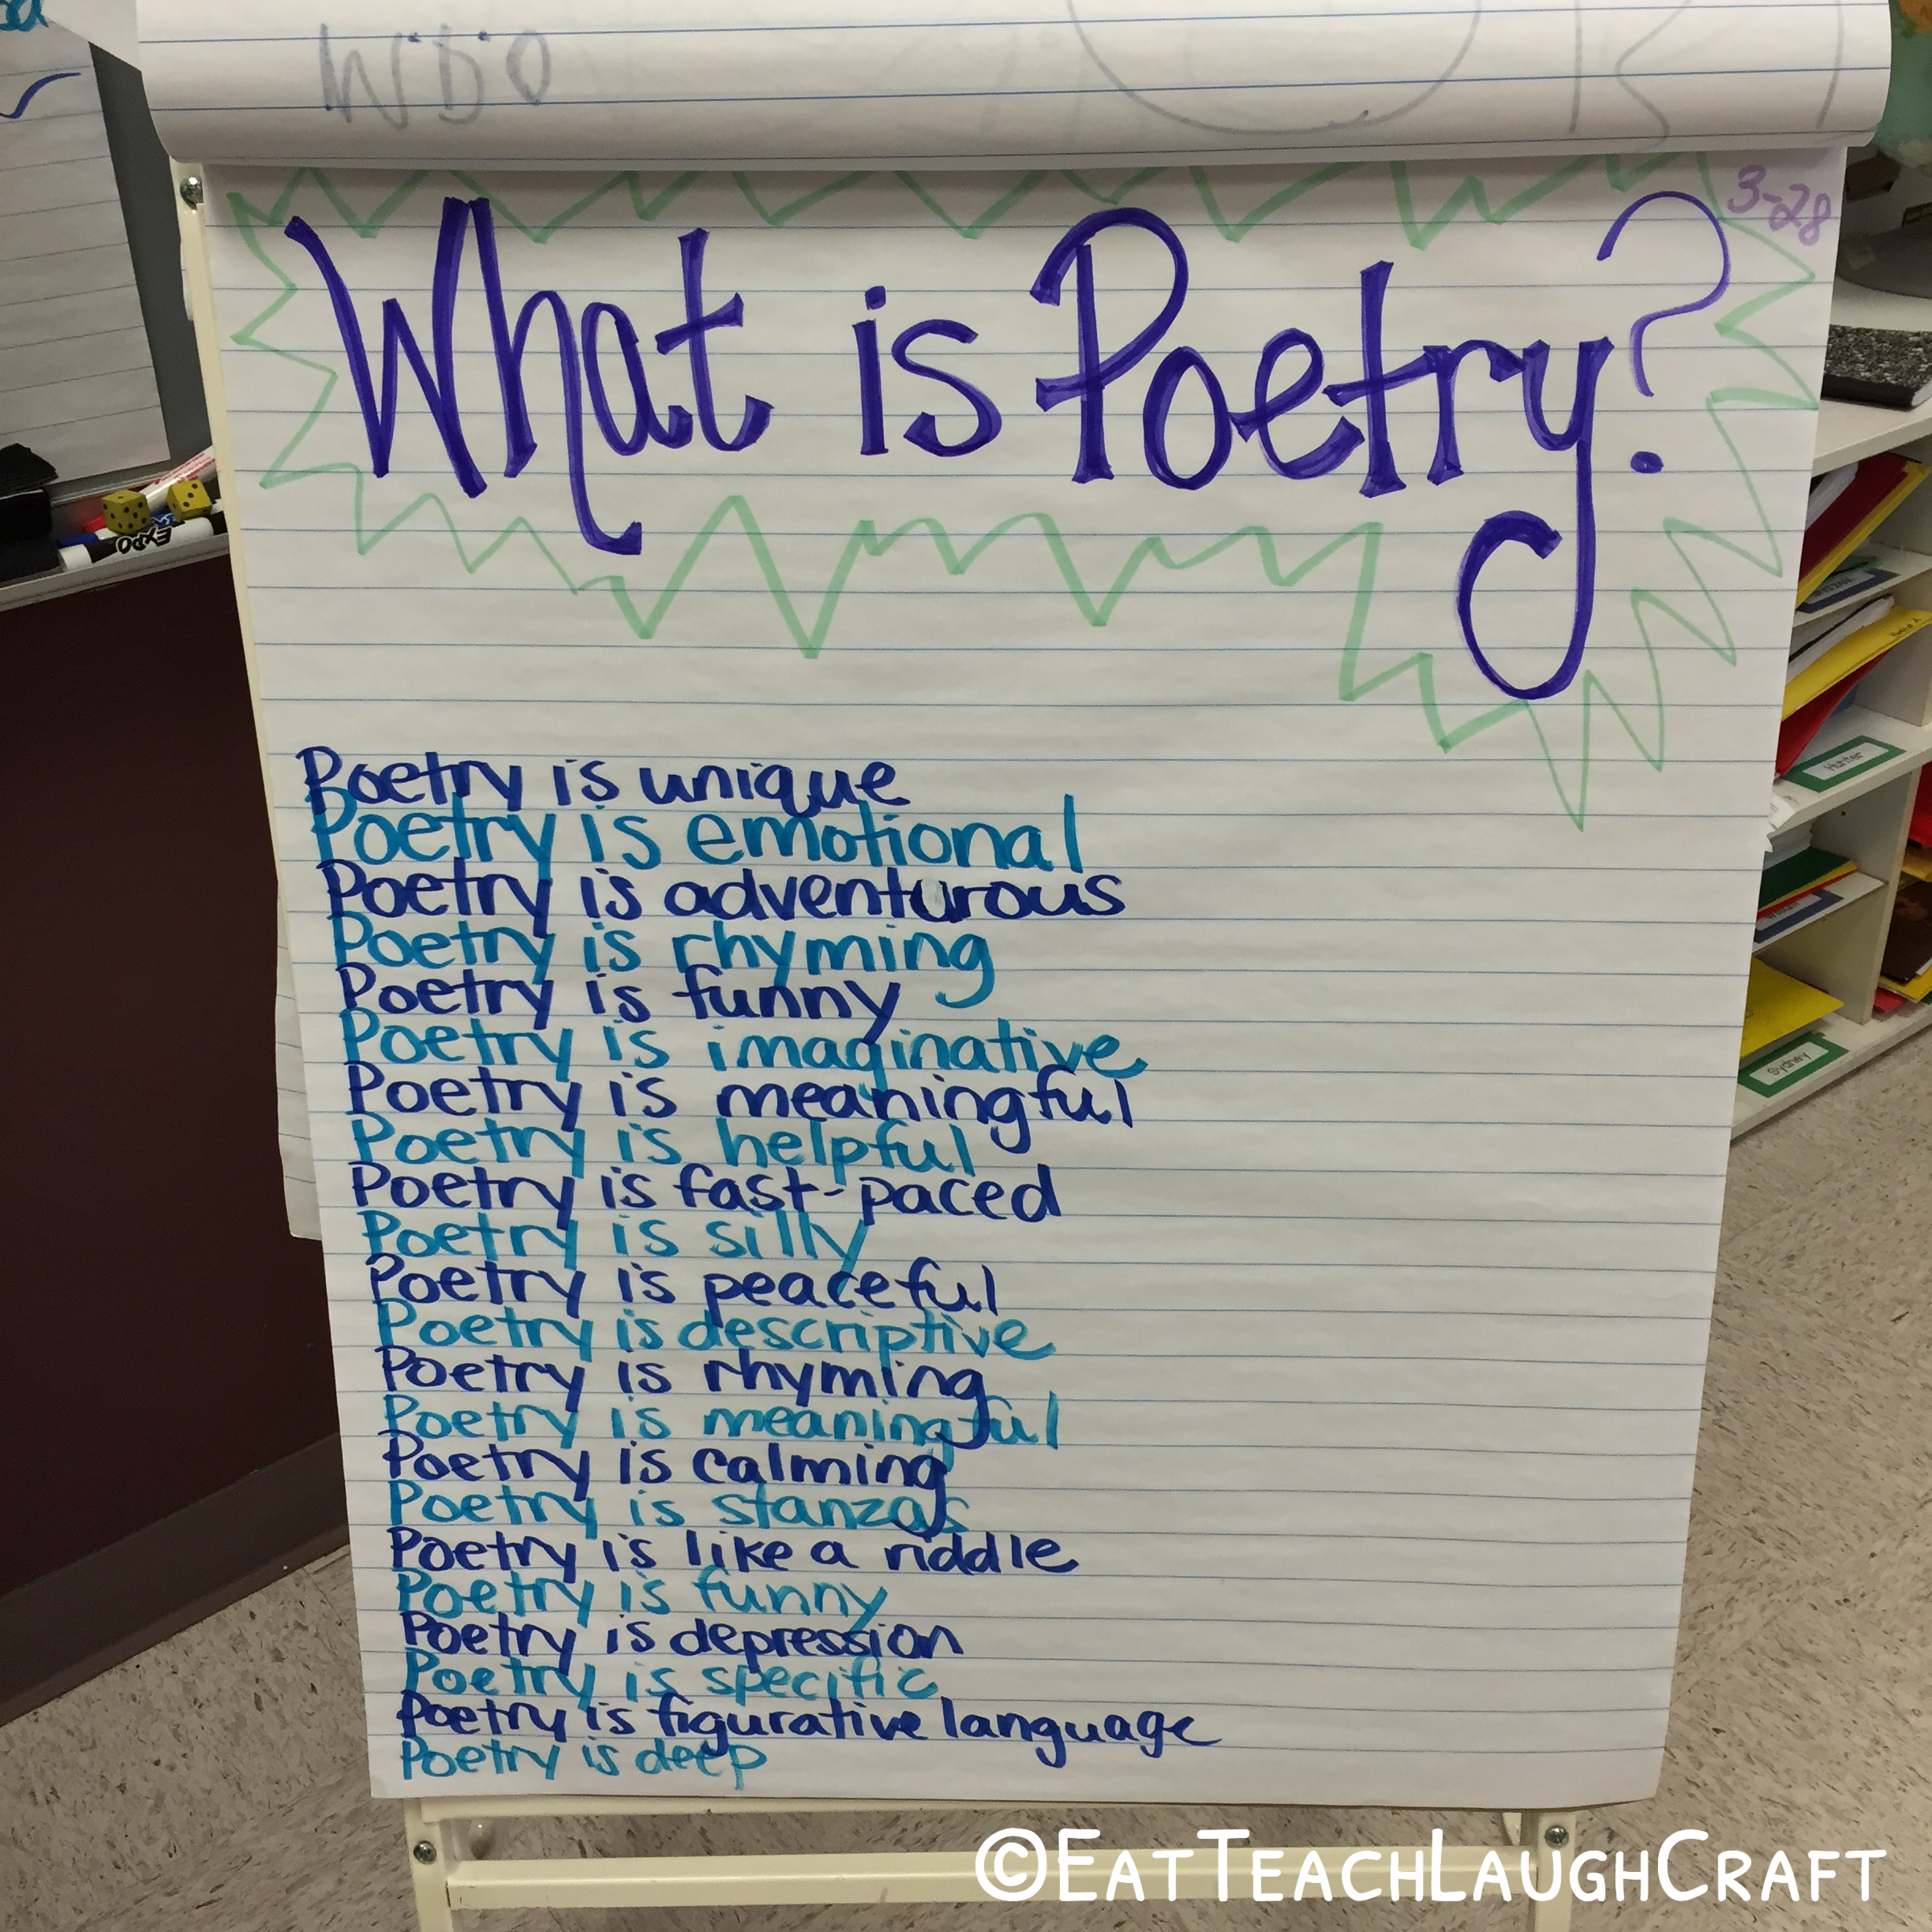 What is poetry 83